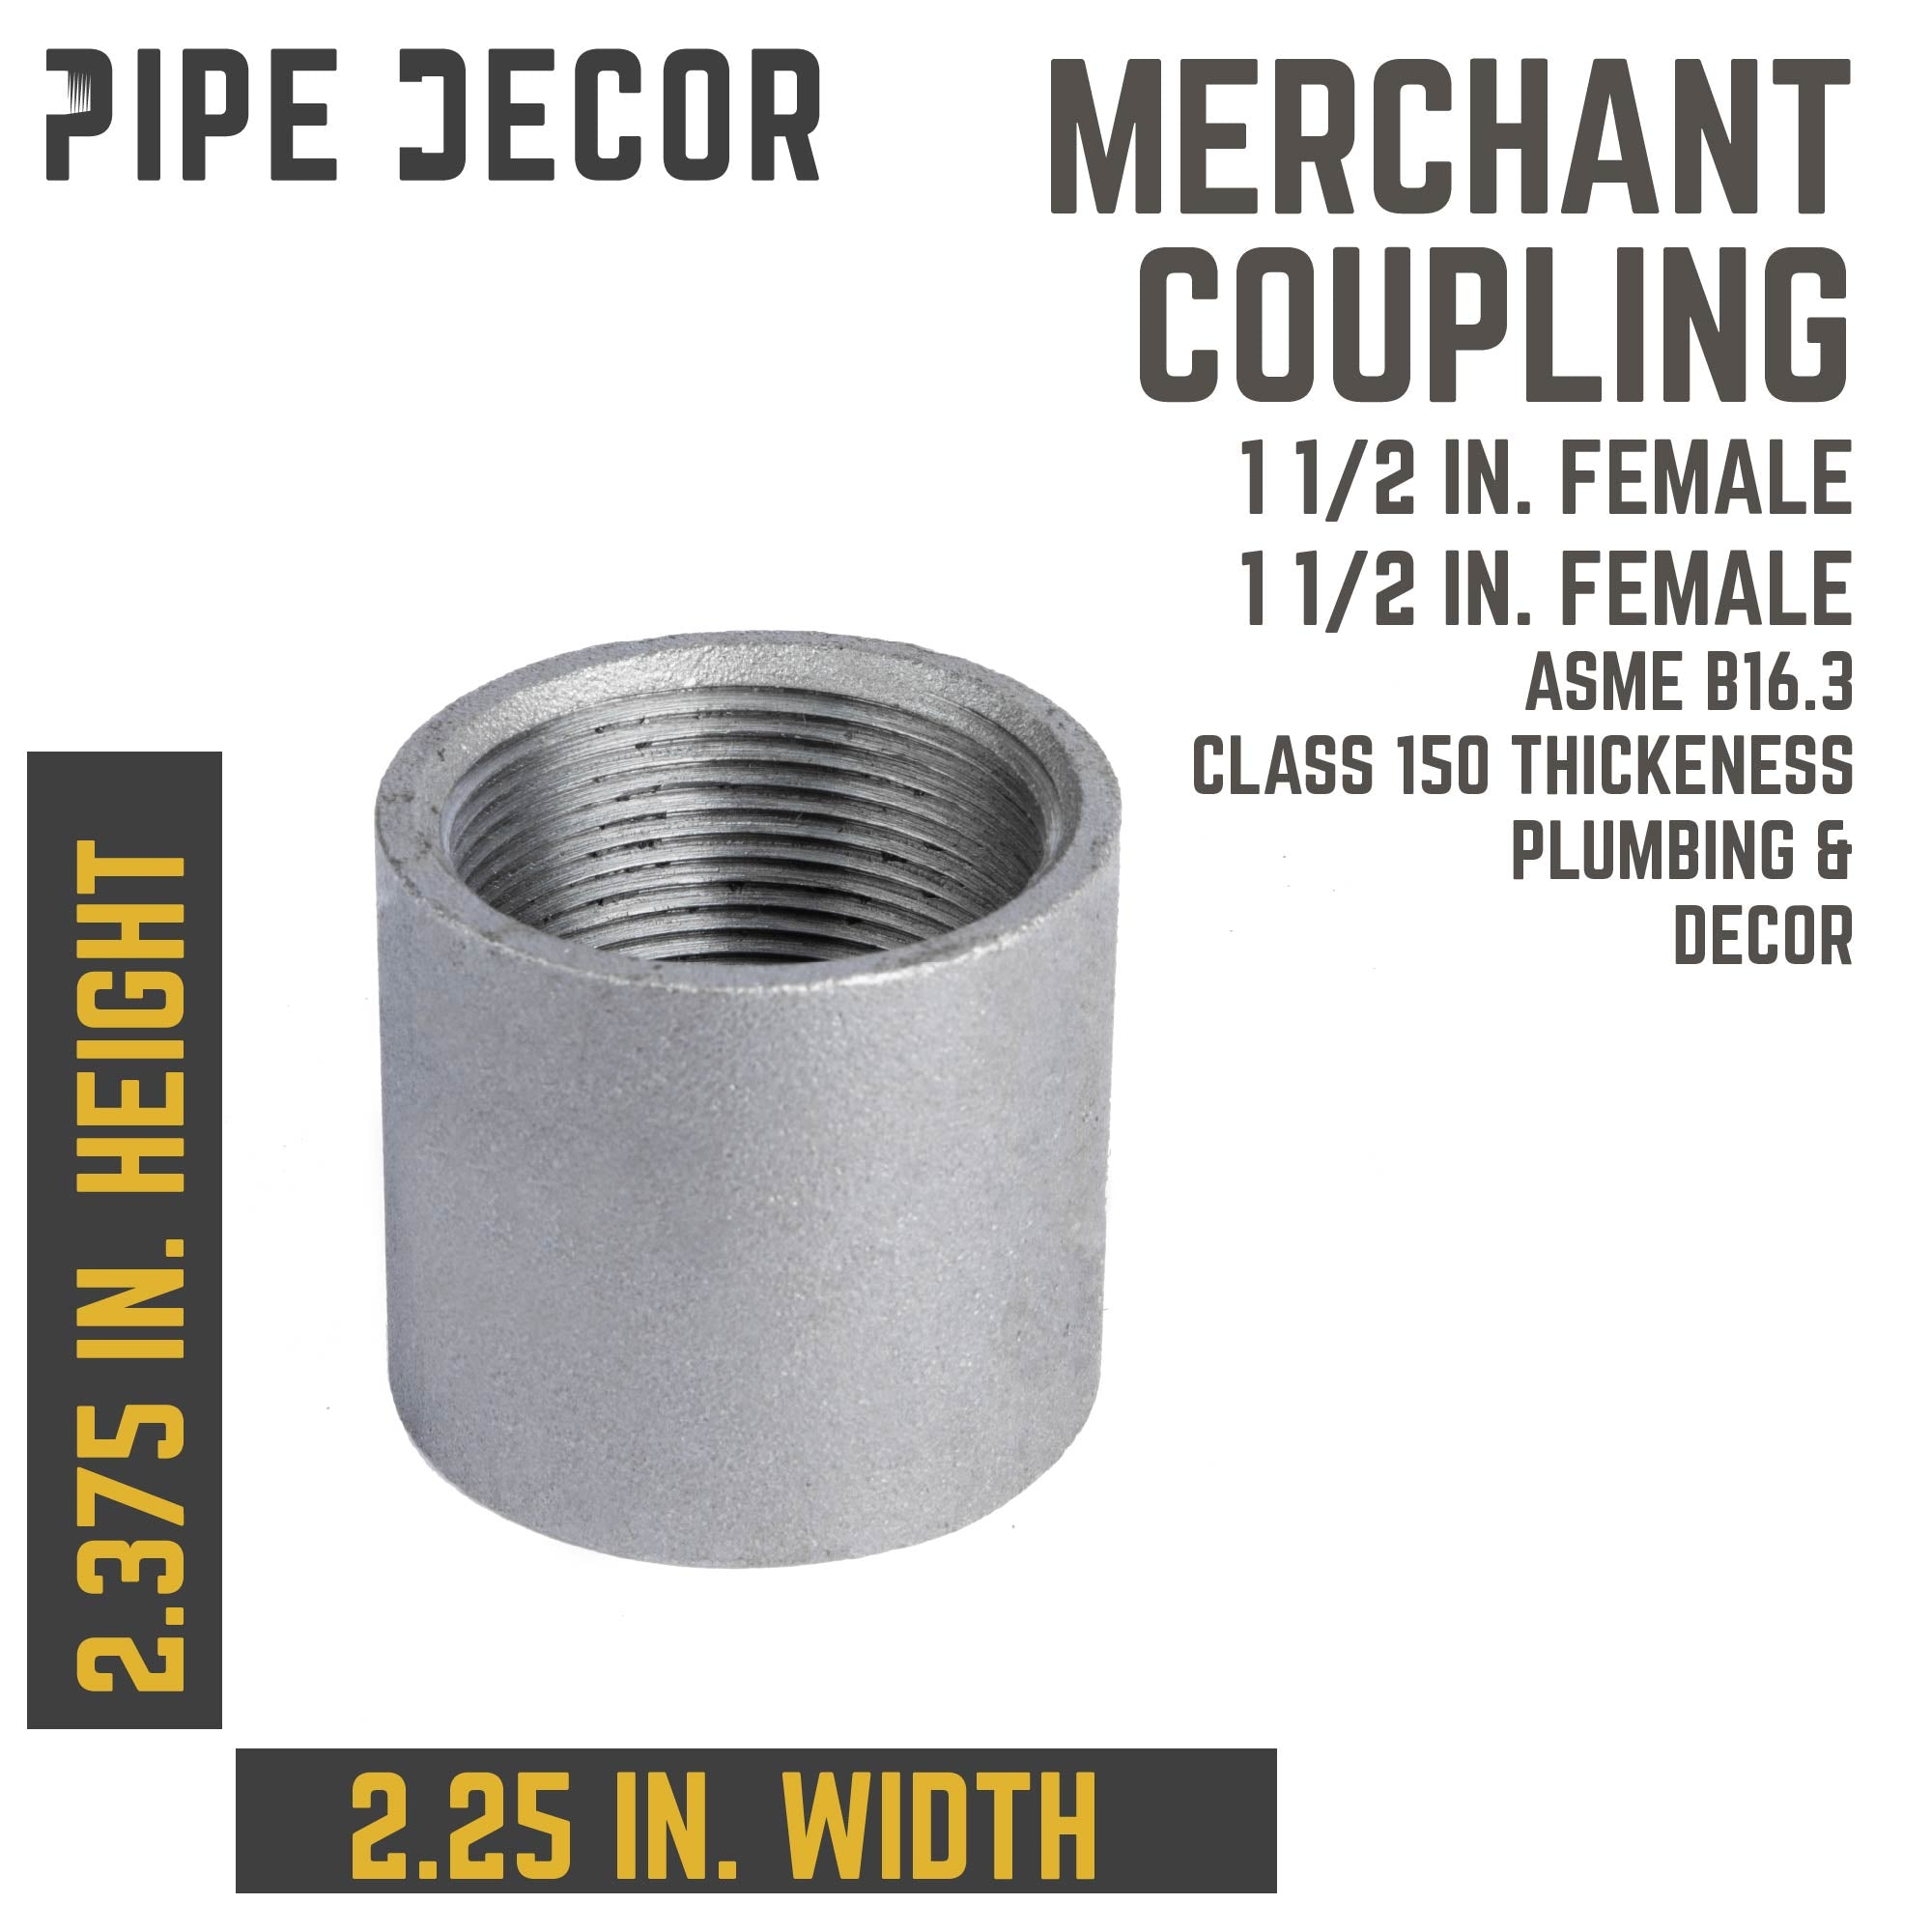 1 1/2 in.  Black merch coupling - Pipe Decor